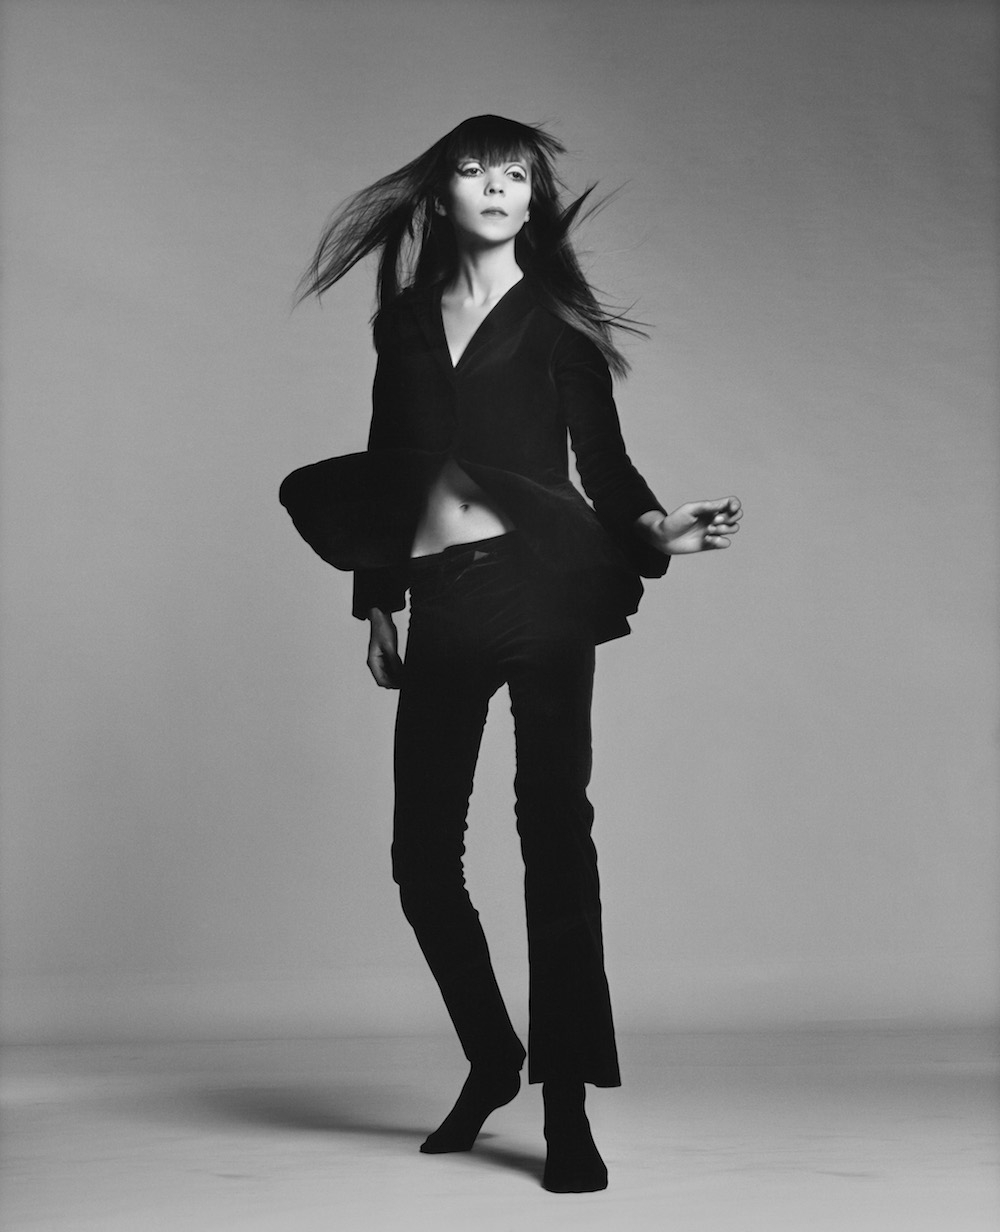 Penelope Tree, New York, June 1967